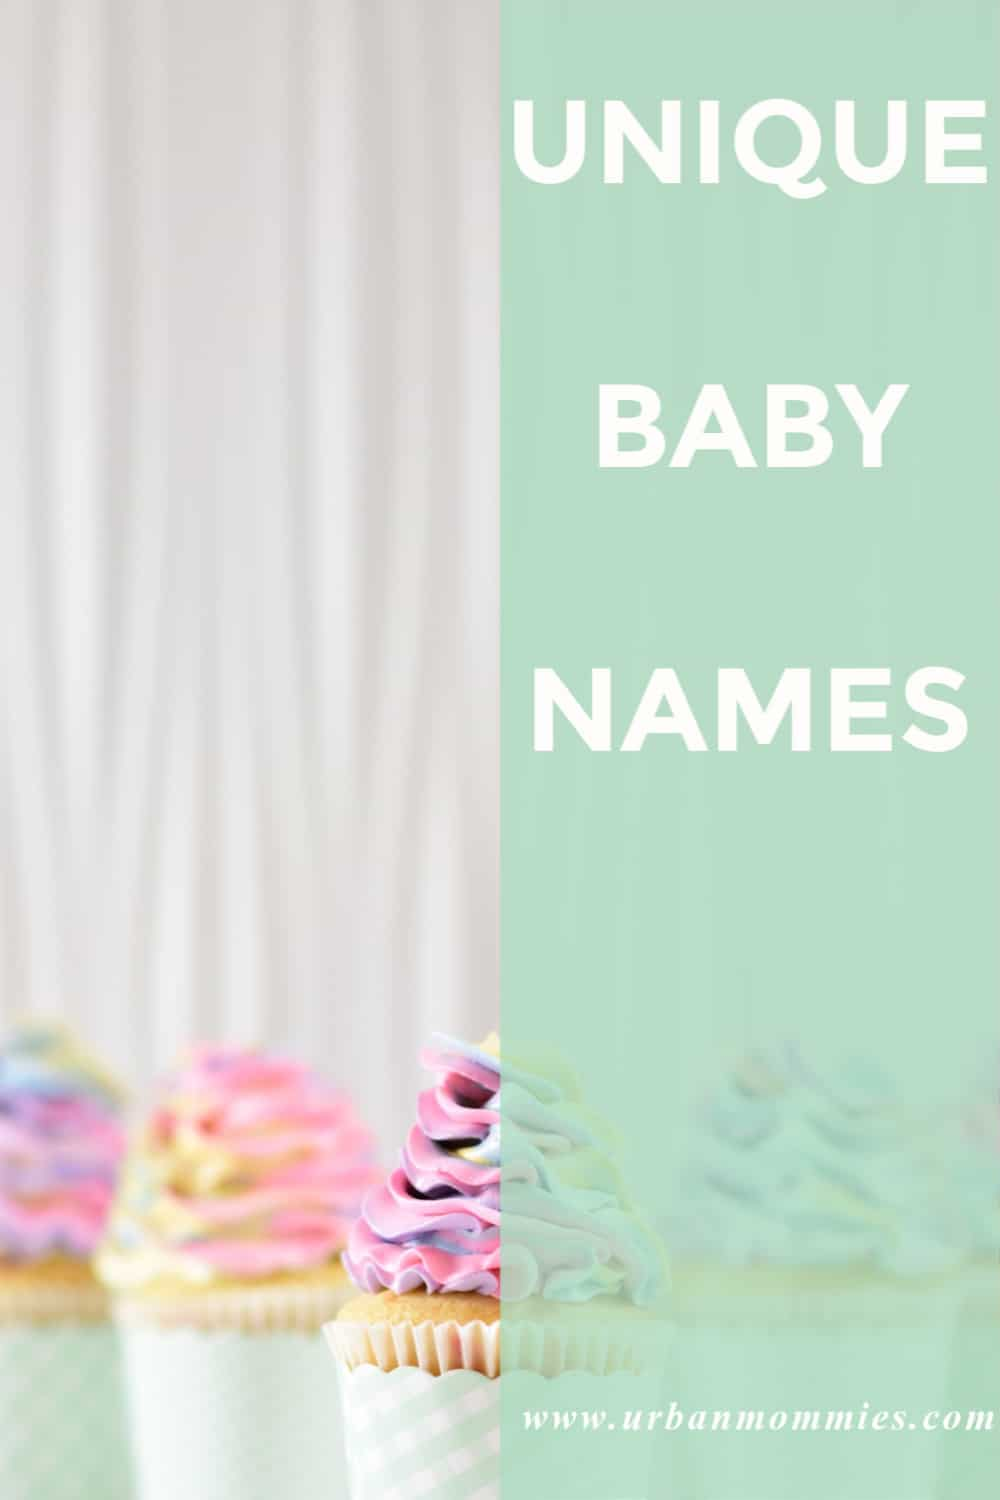 Baby Names that are Unique